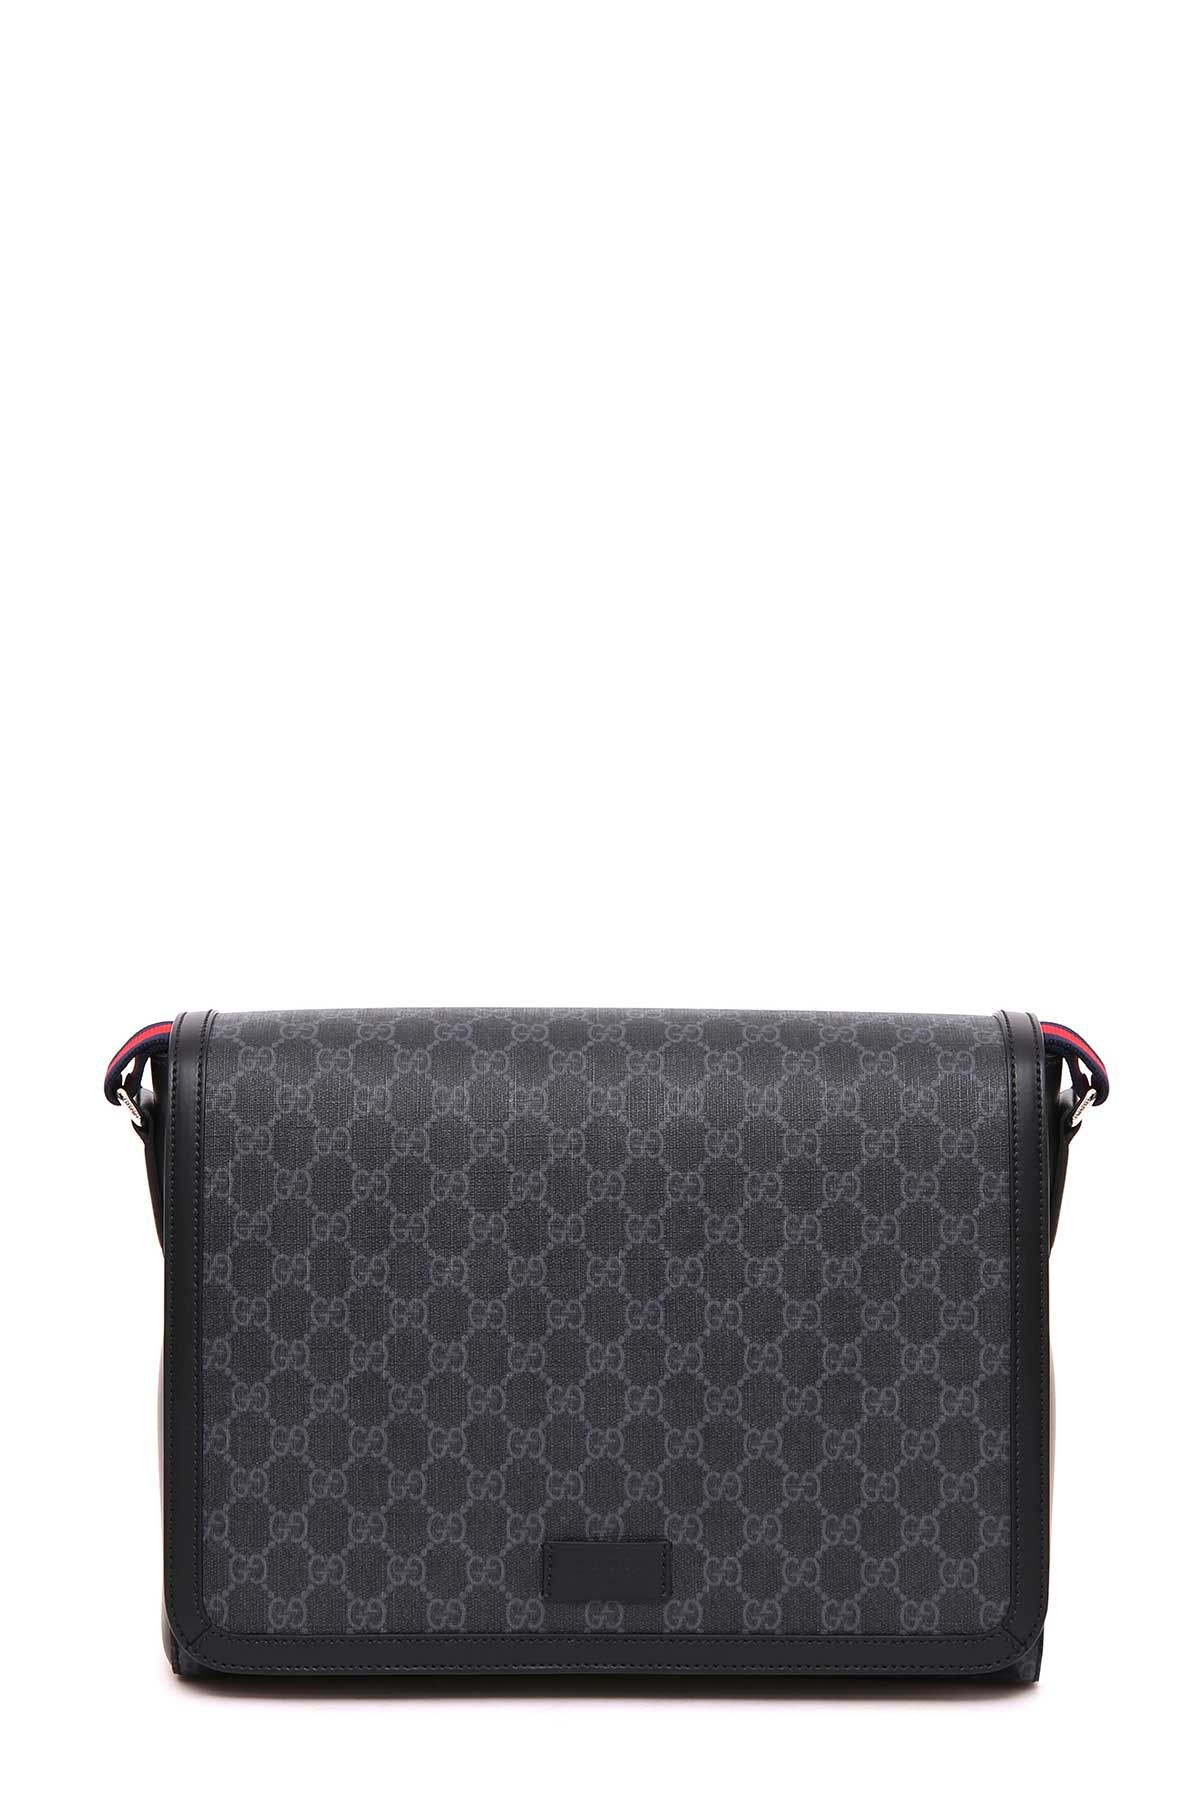 GUCCI GG SUPREME CANVAS MESSENGER Gucci Bags Shoulder Bags - How to create invoice in word gucci outlet online store authentic